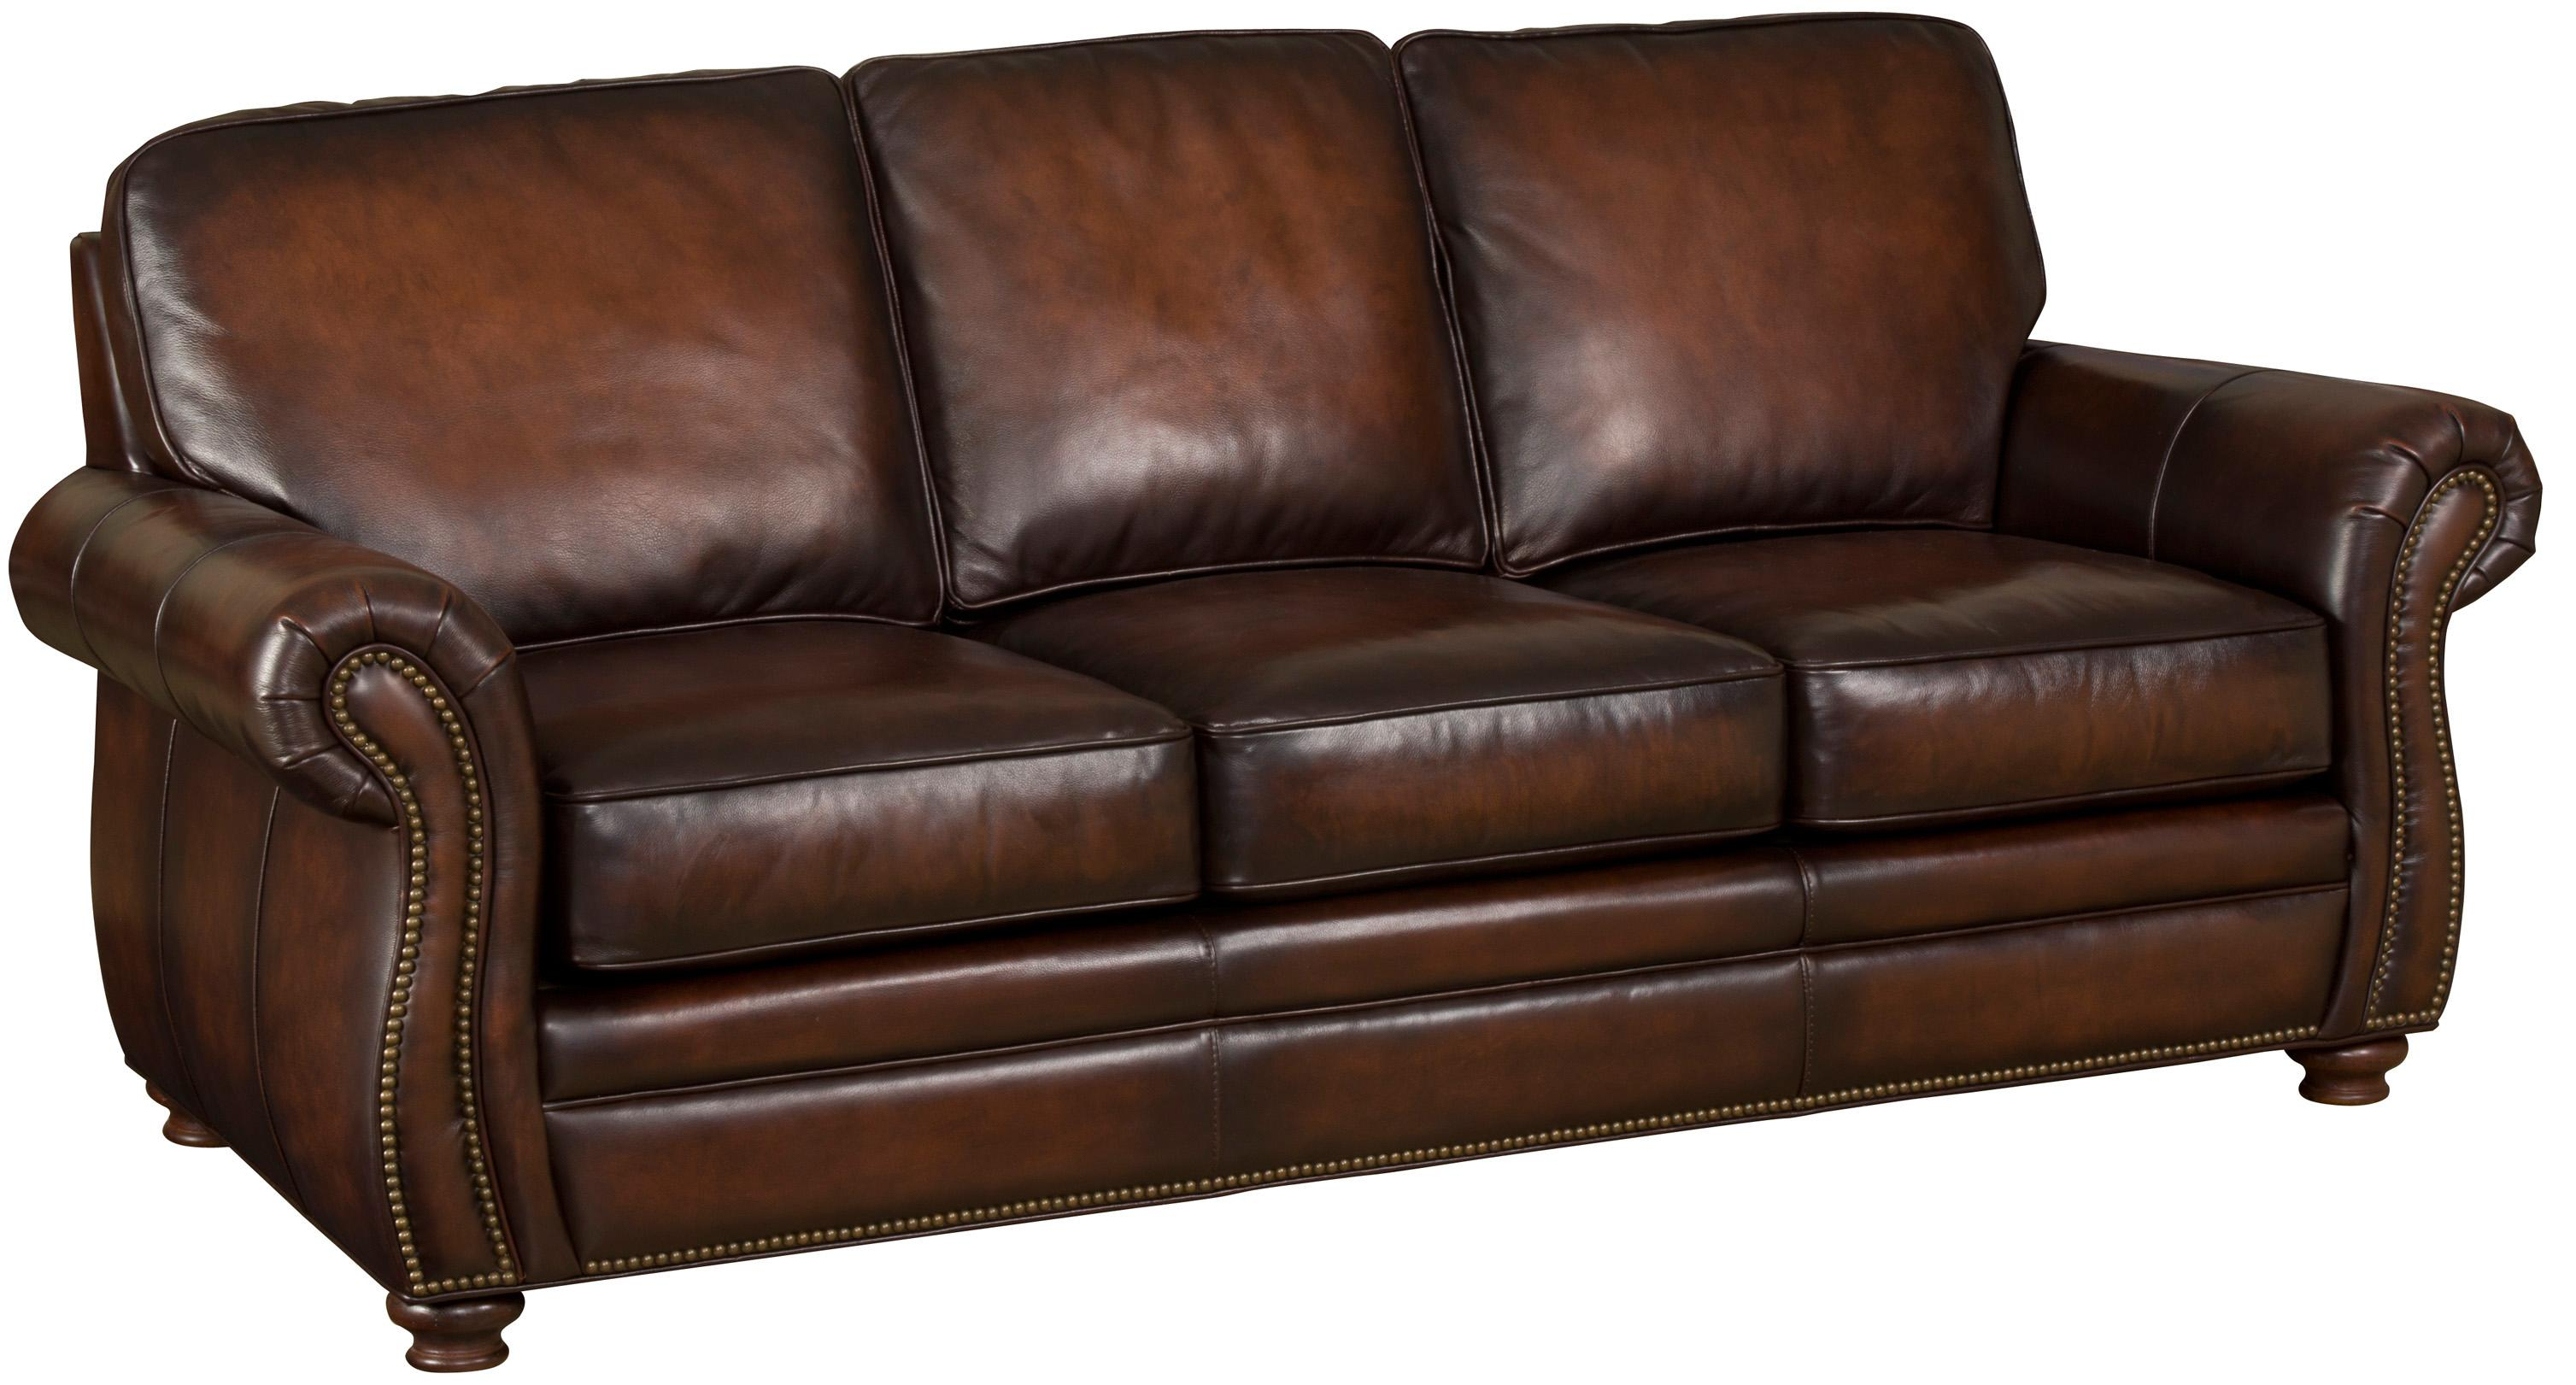 SS186 Brown Leather Sofa by Hooker Furniture at Alison Craig Home Furnishings